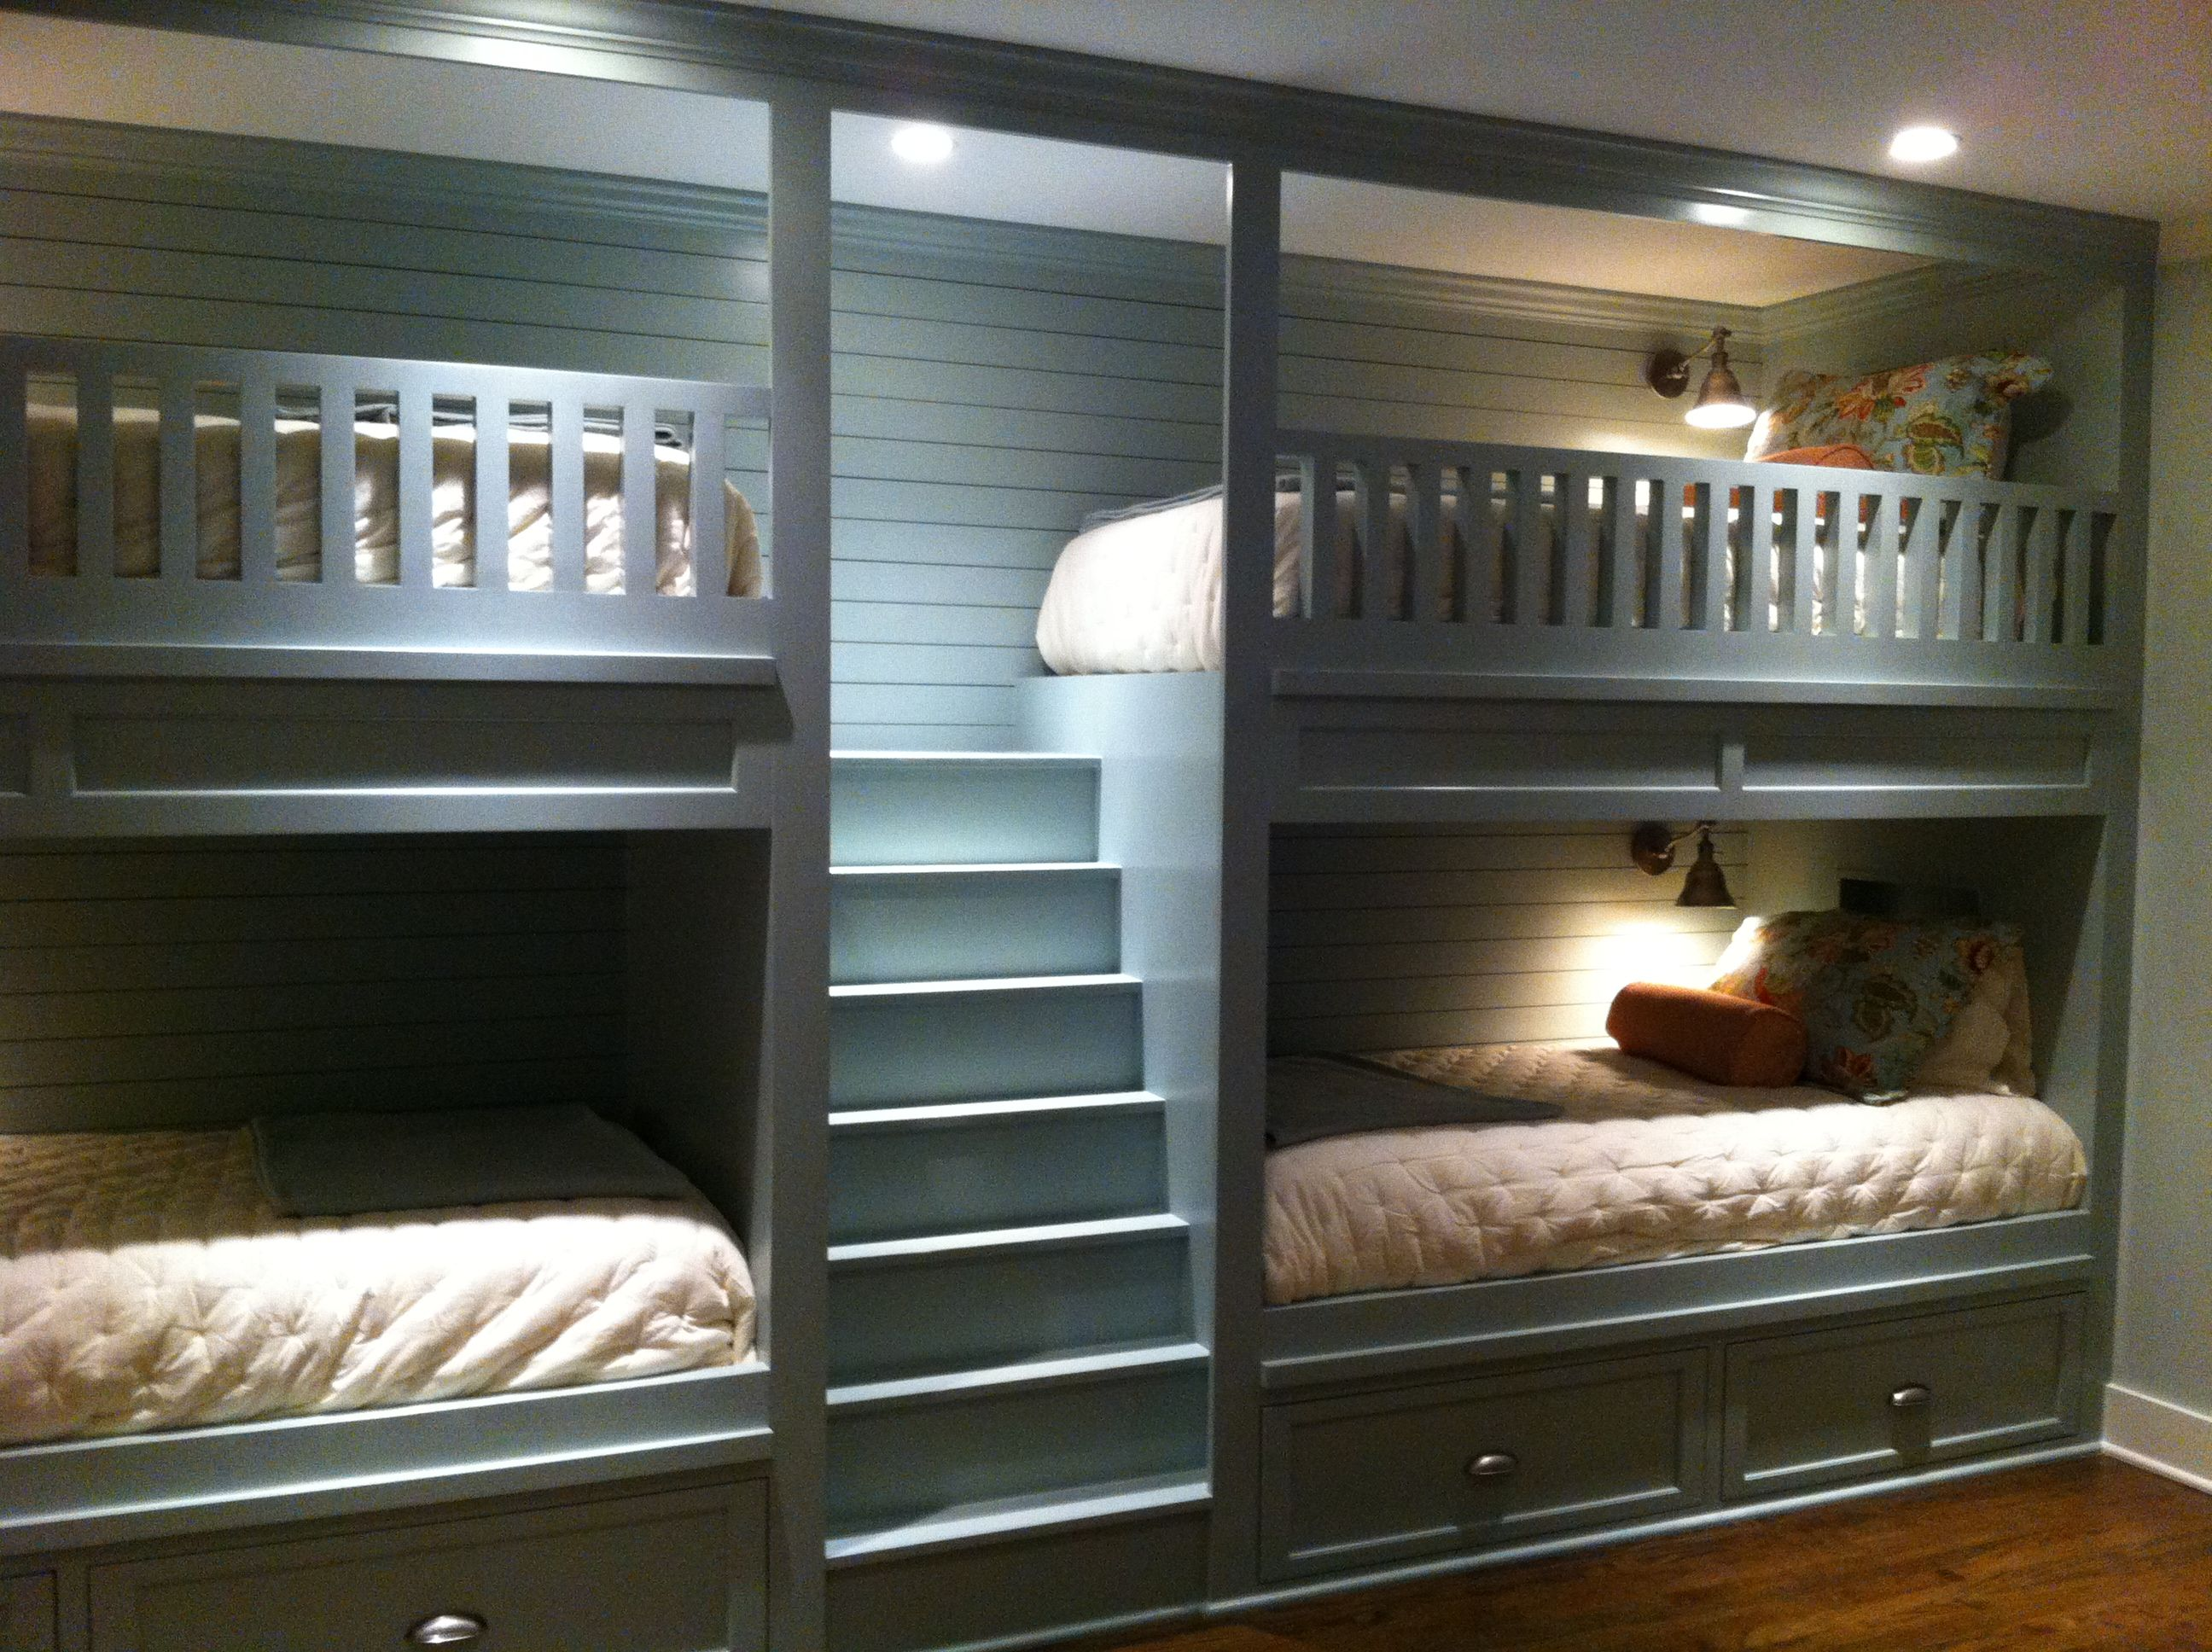 Double Bunk Beds Double Bunk Beds In Our New Basement Bunk Room Fun For